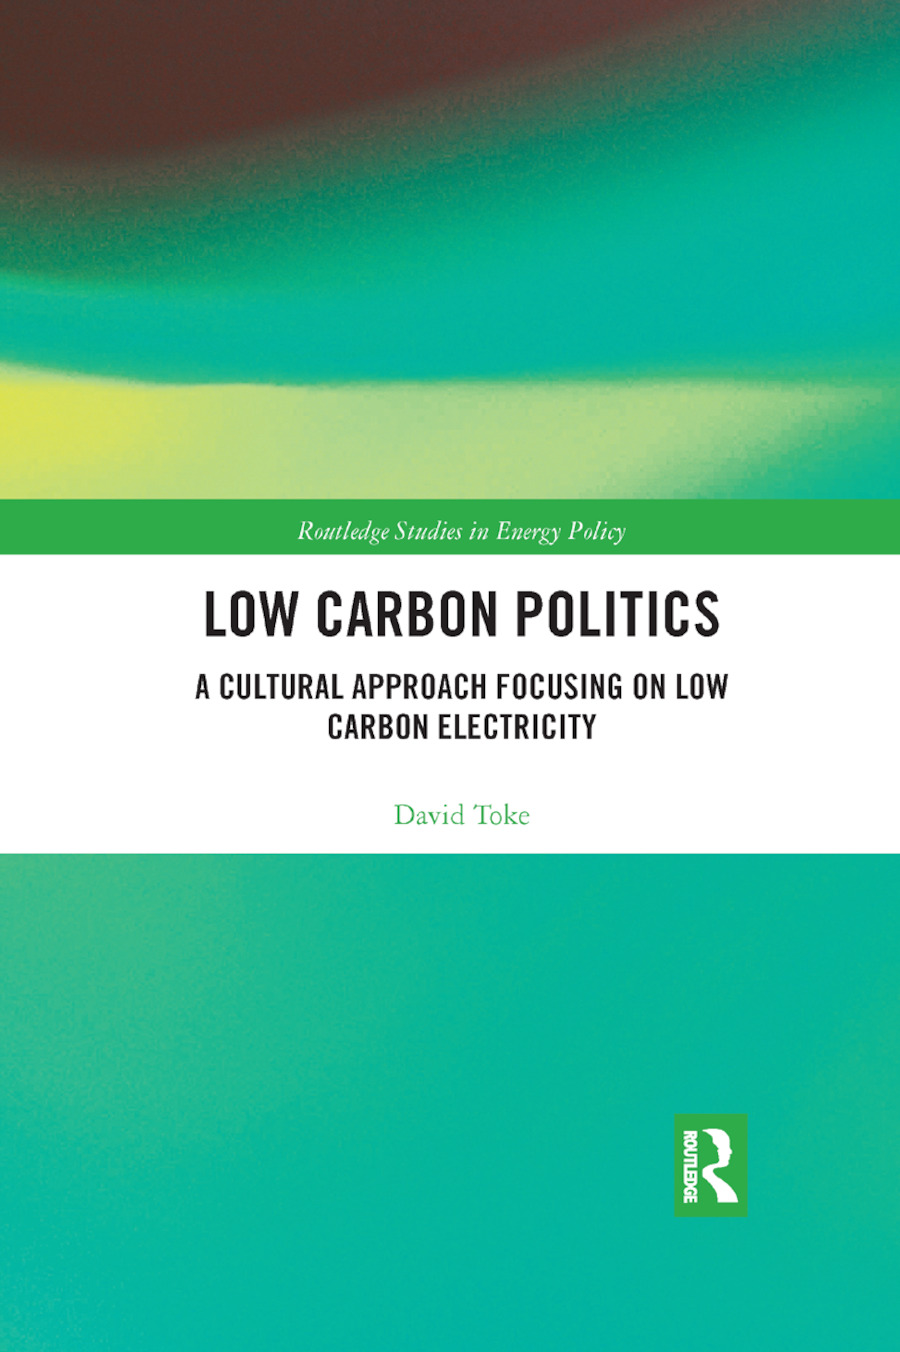 Low Carbon Politics: A Cultural Approach Focusing on Low Carbon Electricity book cover